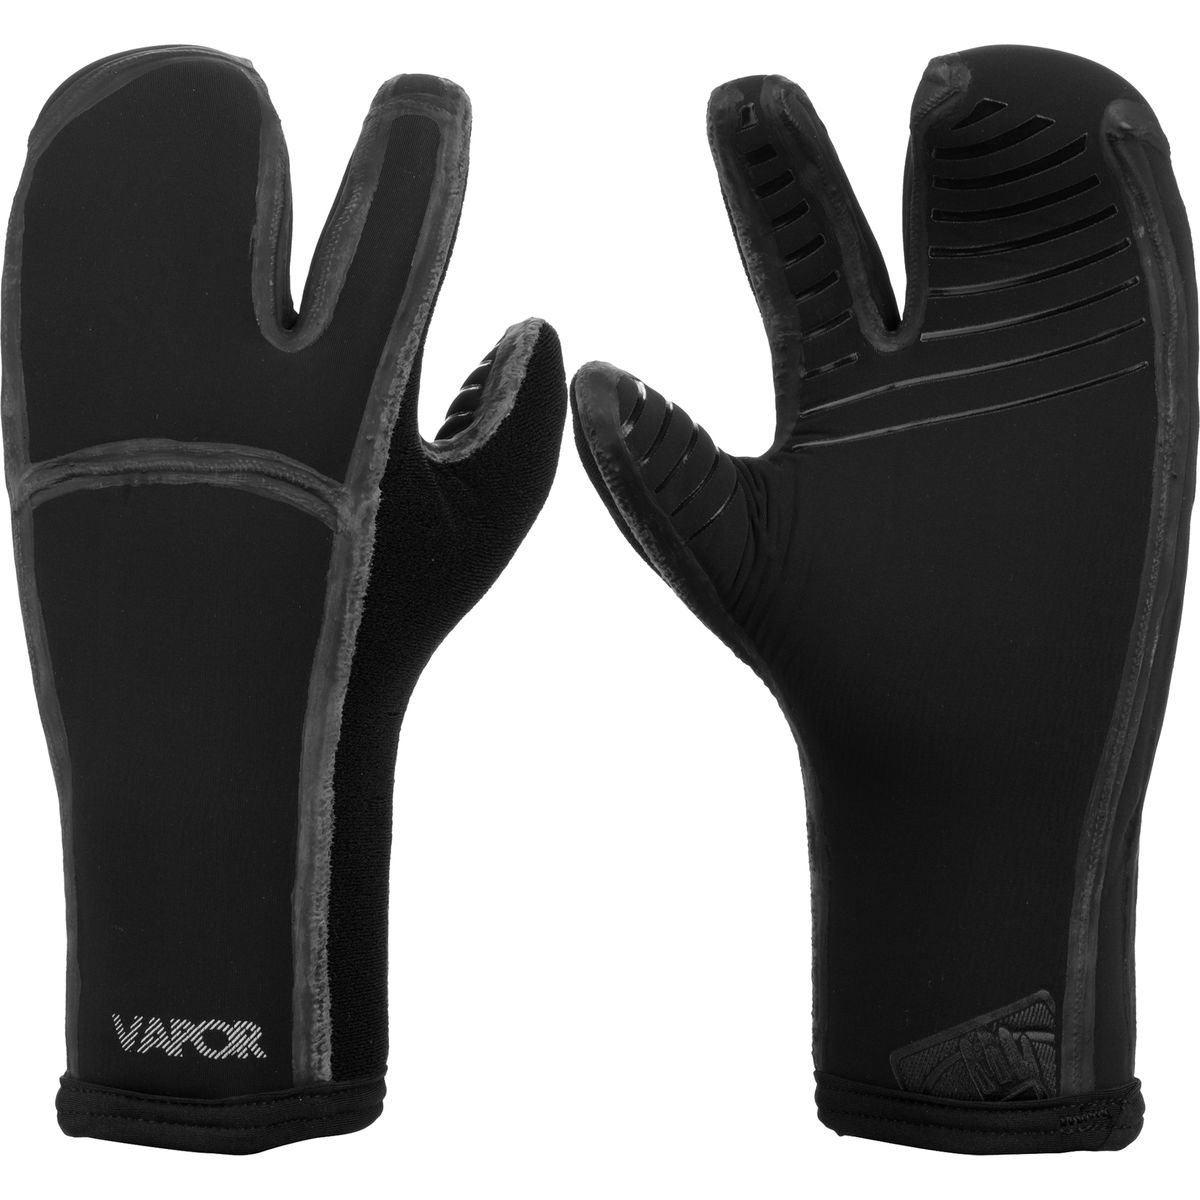 photo of a Body Glove paddling product